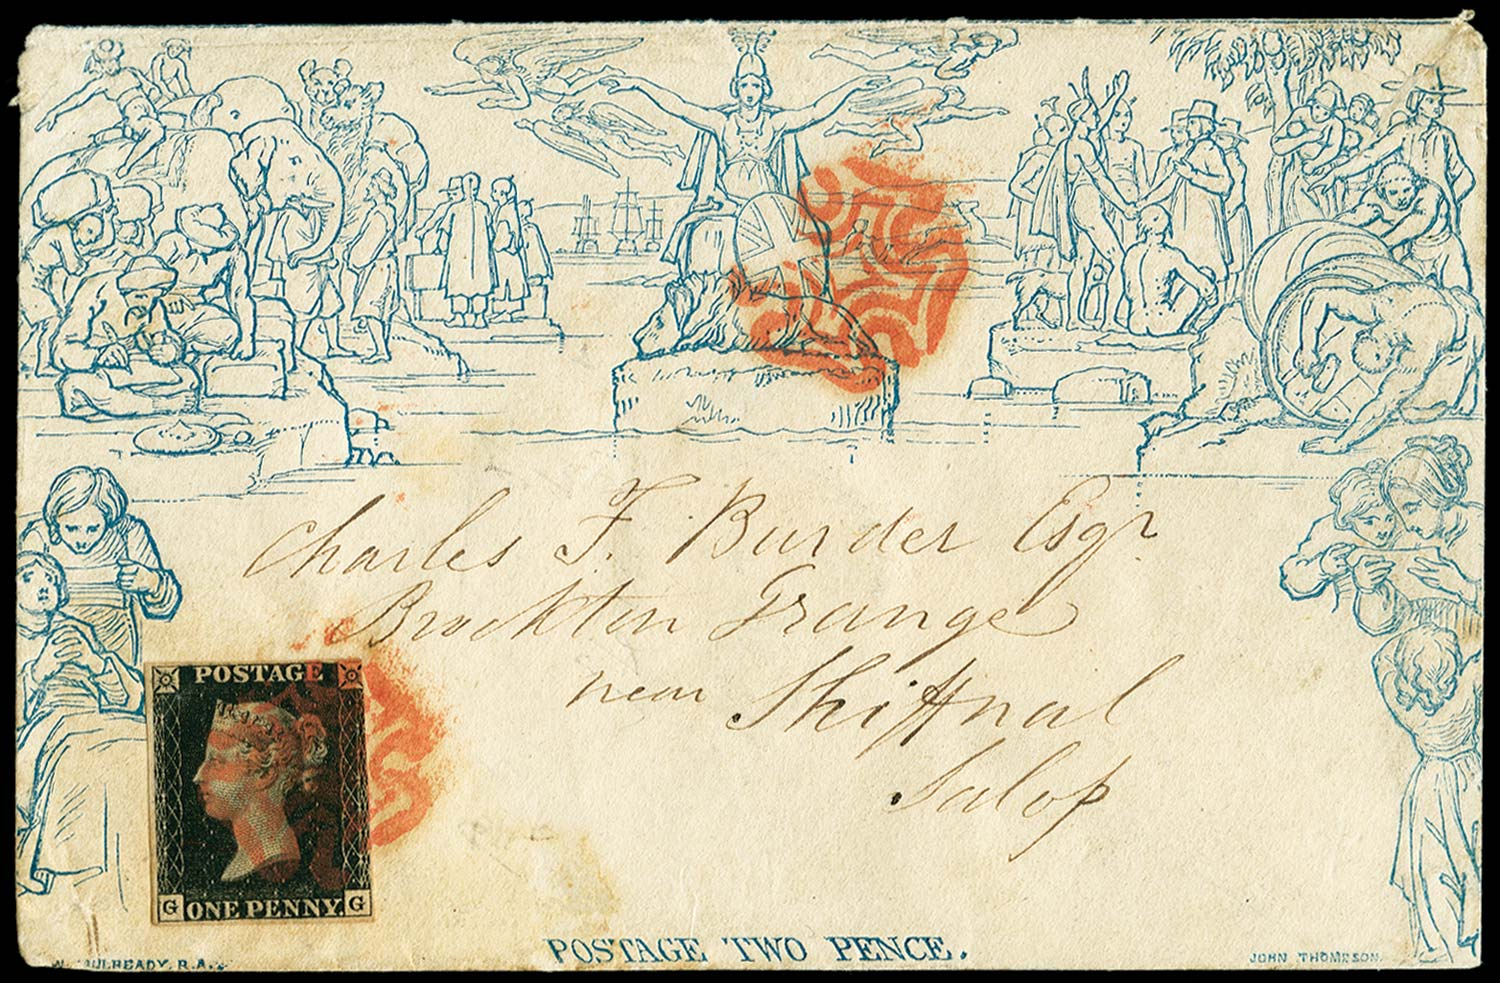 GB 1840  SGME4,2 Pl.6 Cover with a 1d late fee paid by a penny black